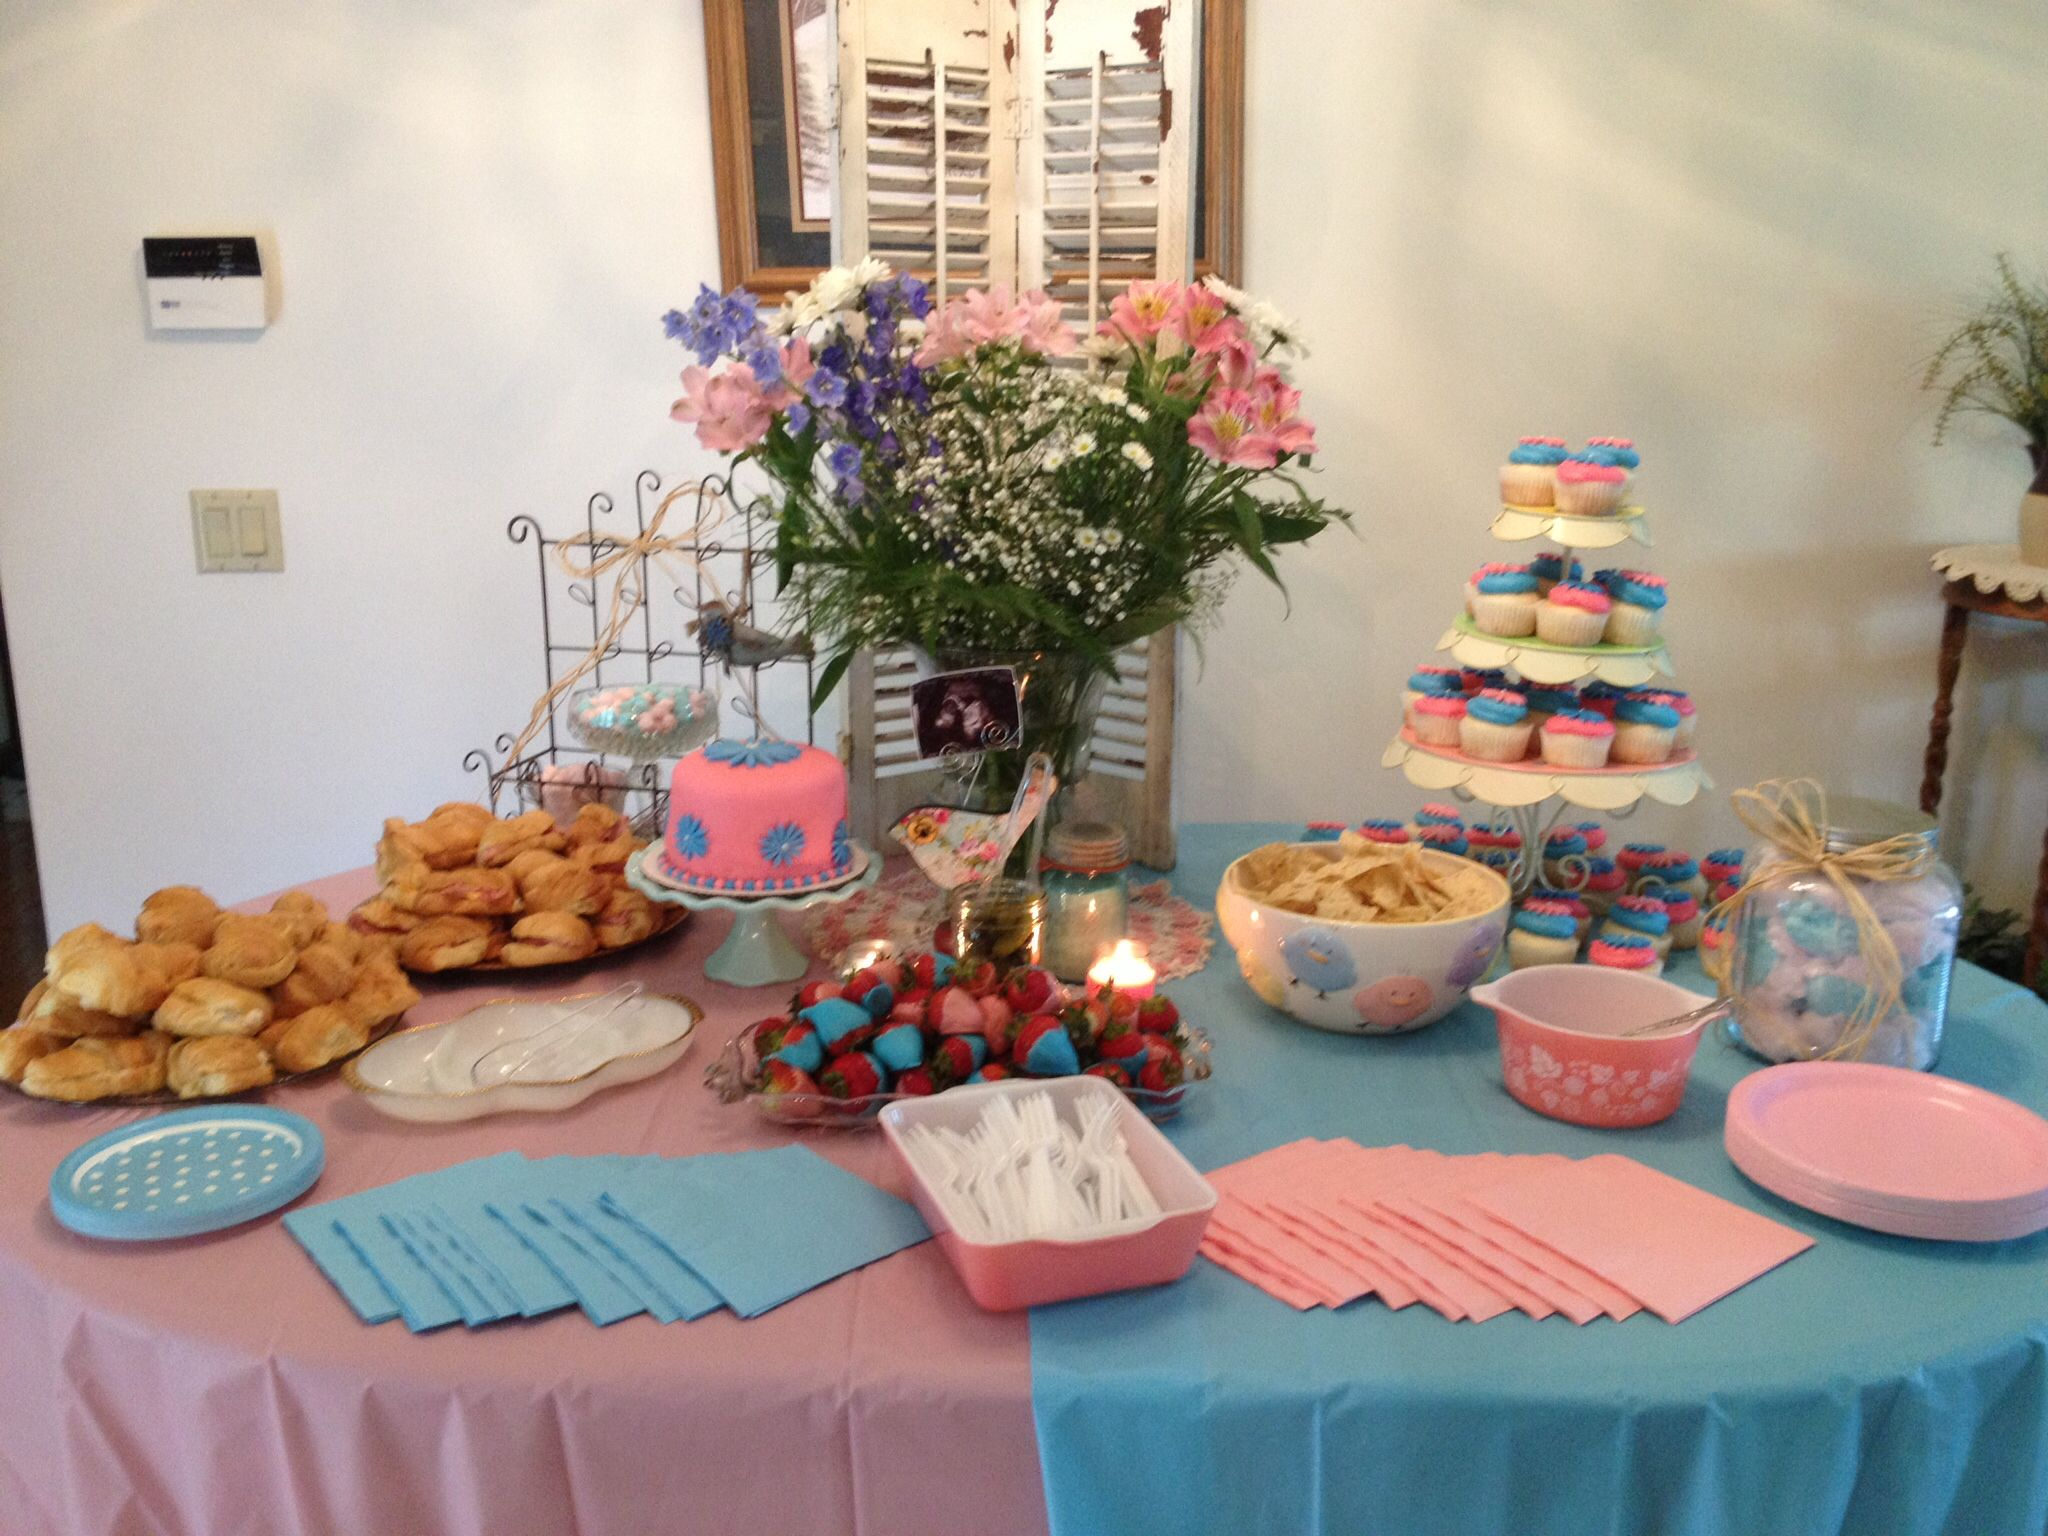 15 Gender Reveal Party Food Ideas to Celebrate Your New Baby